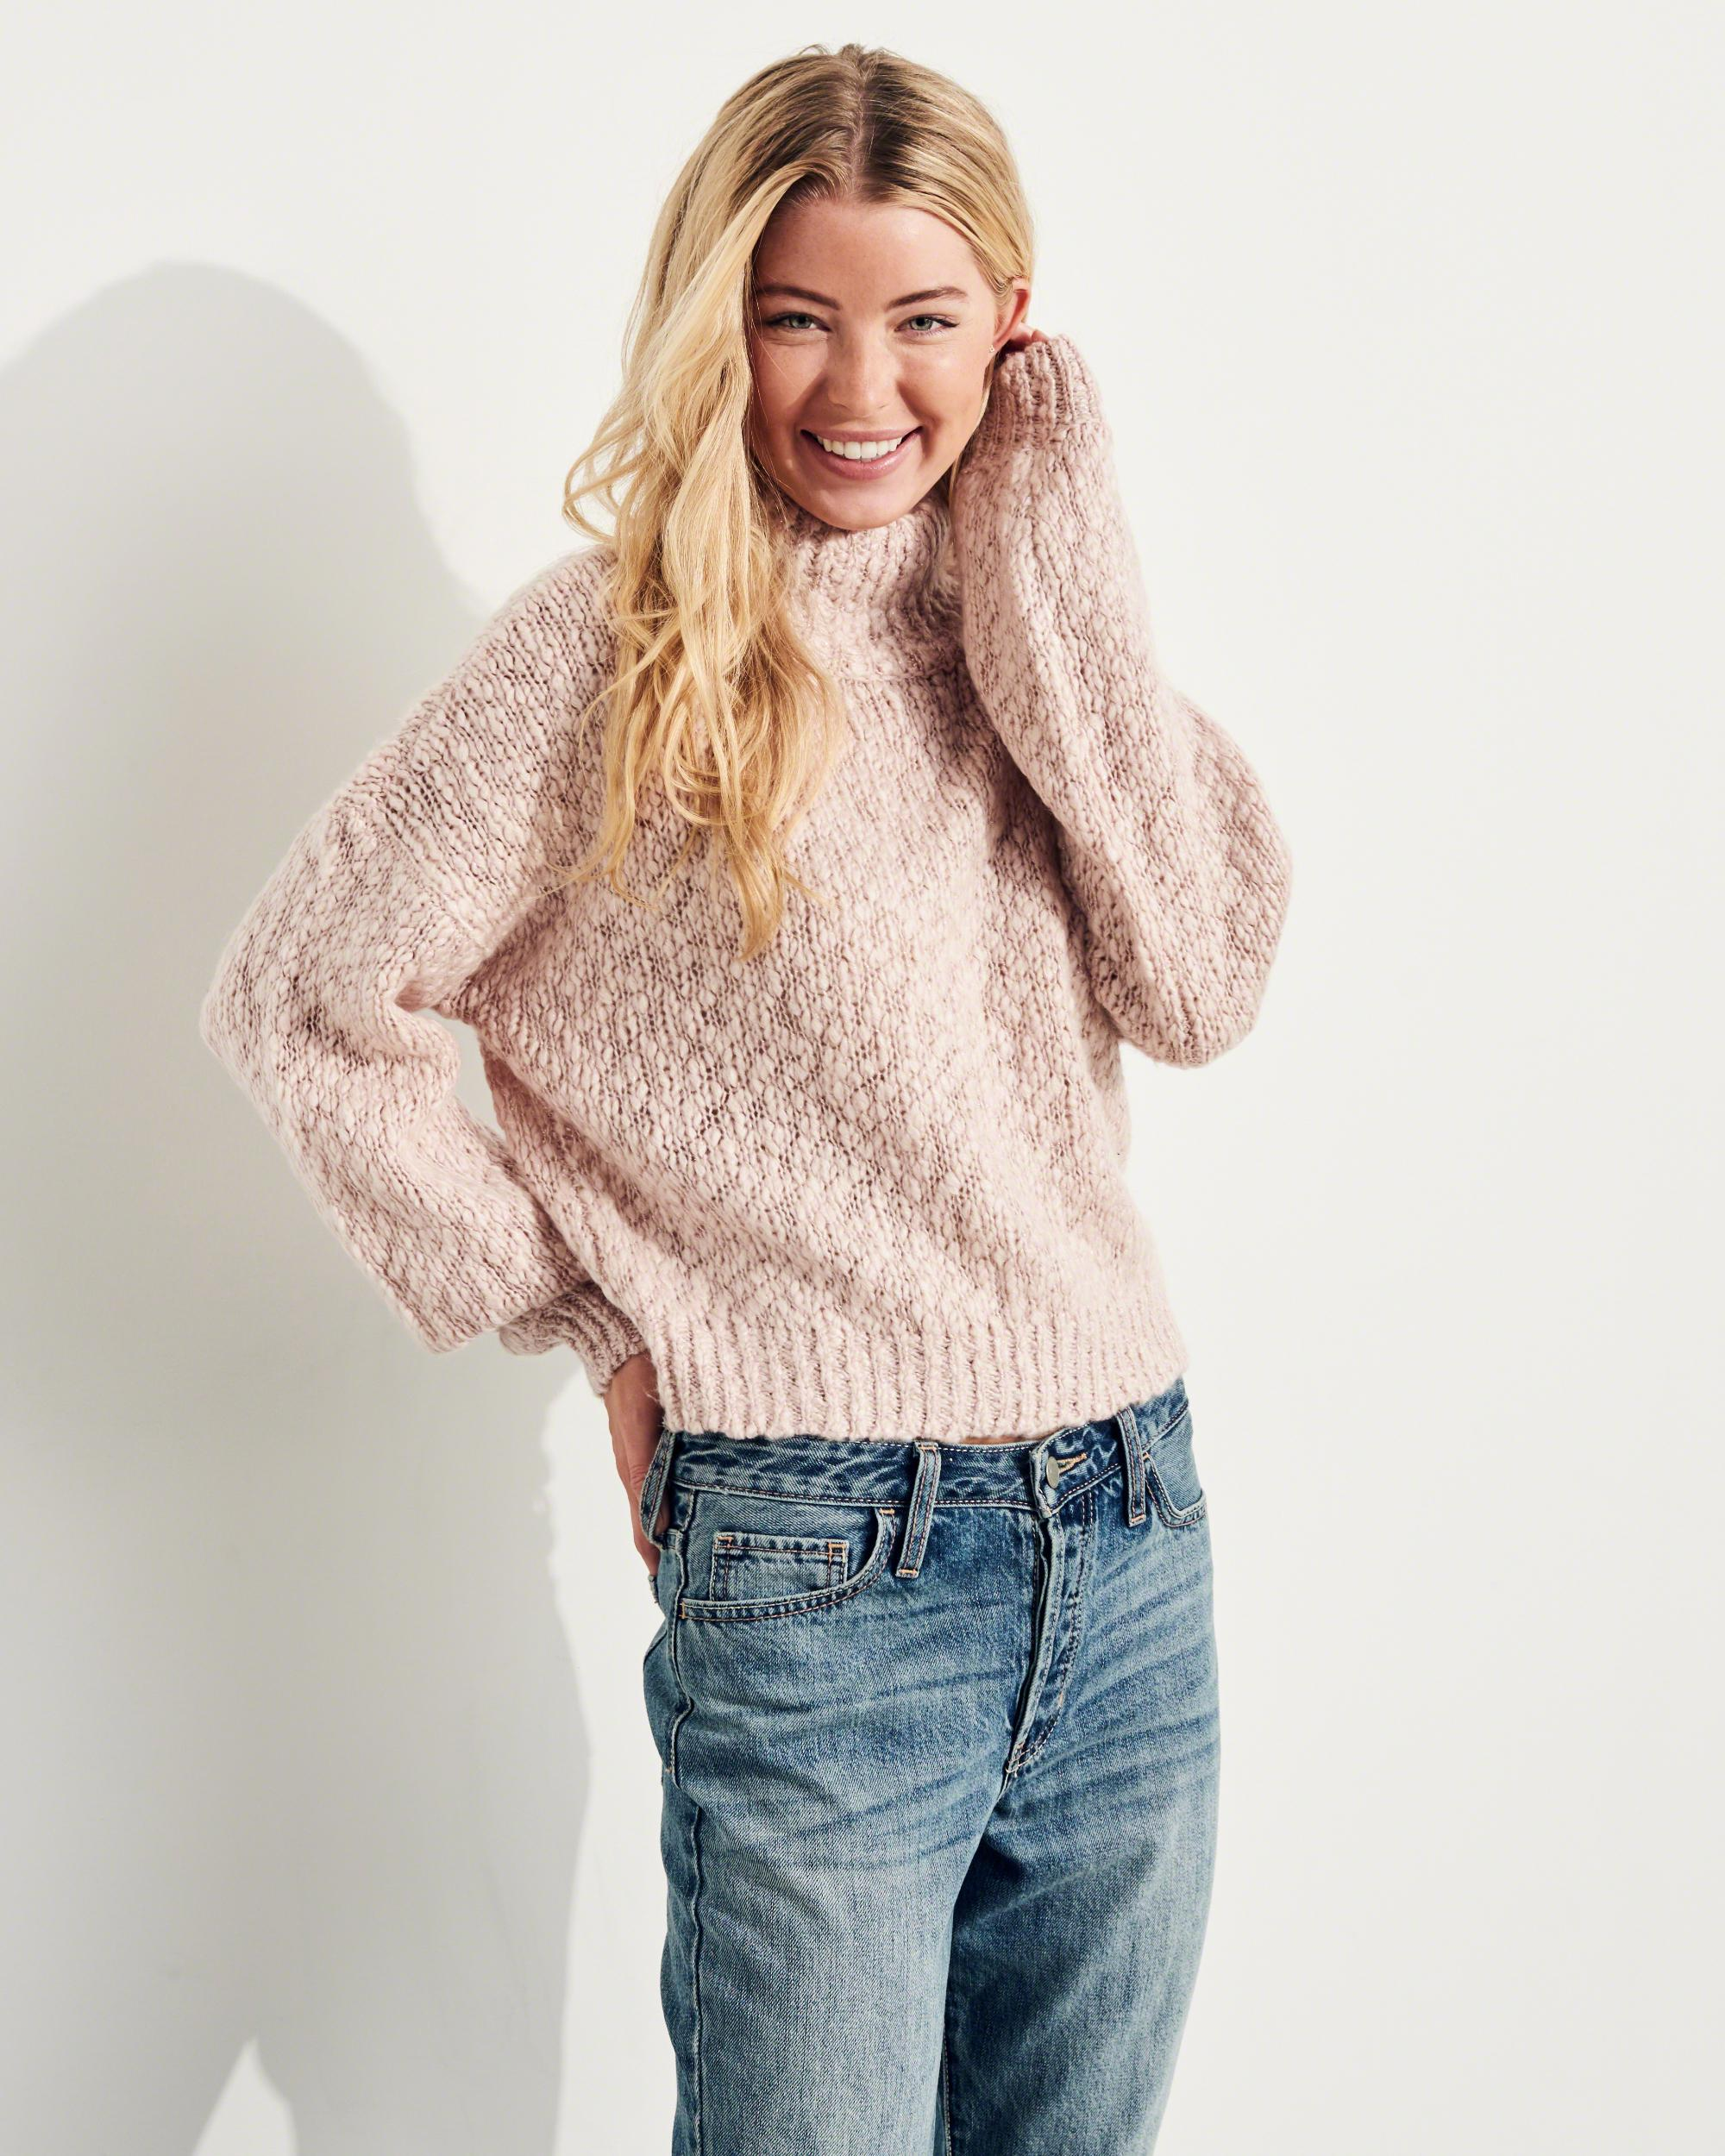 Hollister Shine Chunky Turtleneck Sweater in Pink - Save 62% | Lyst